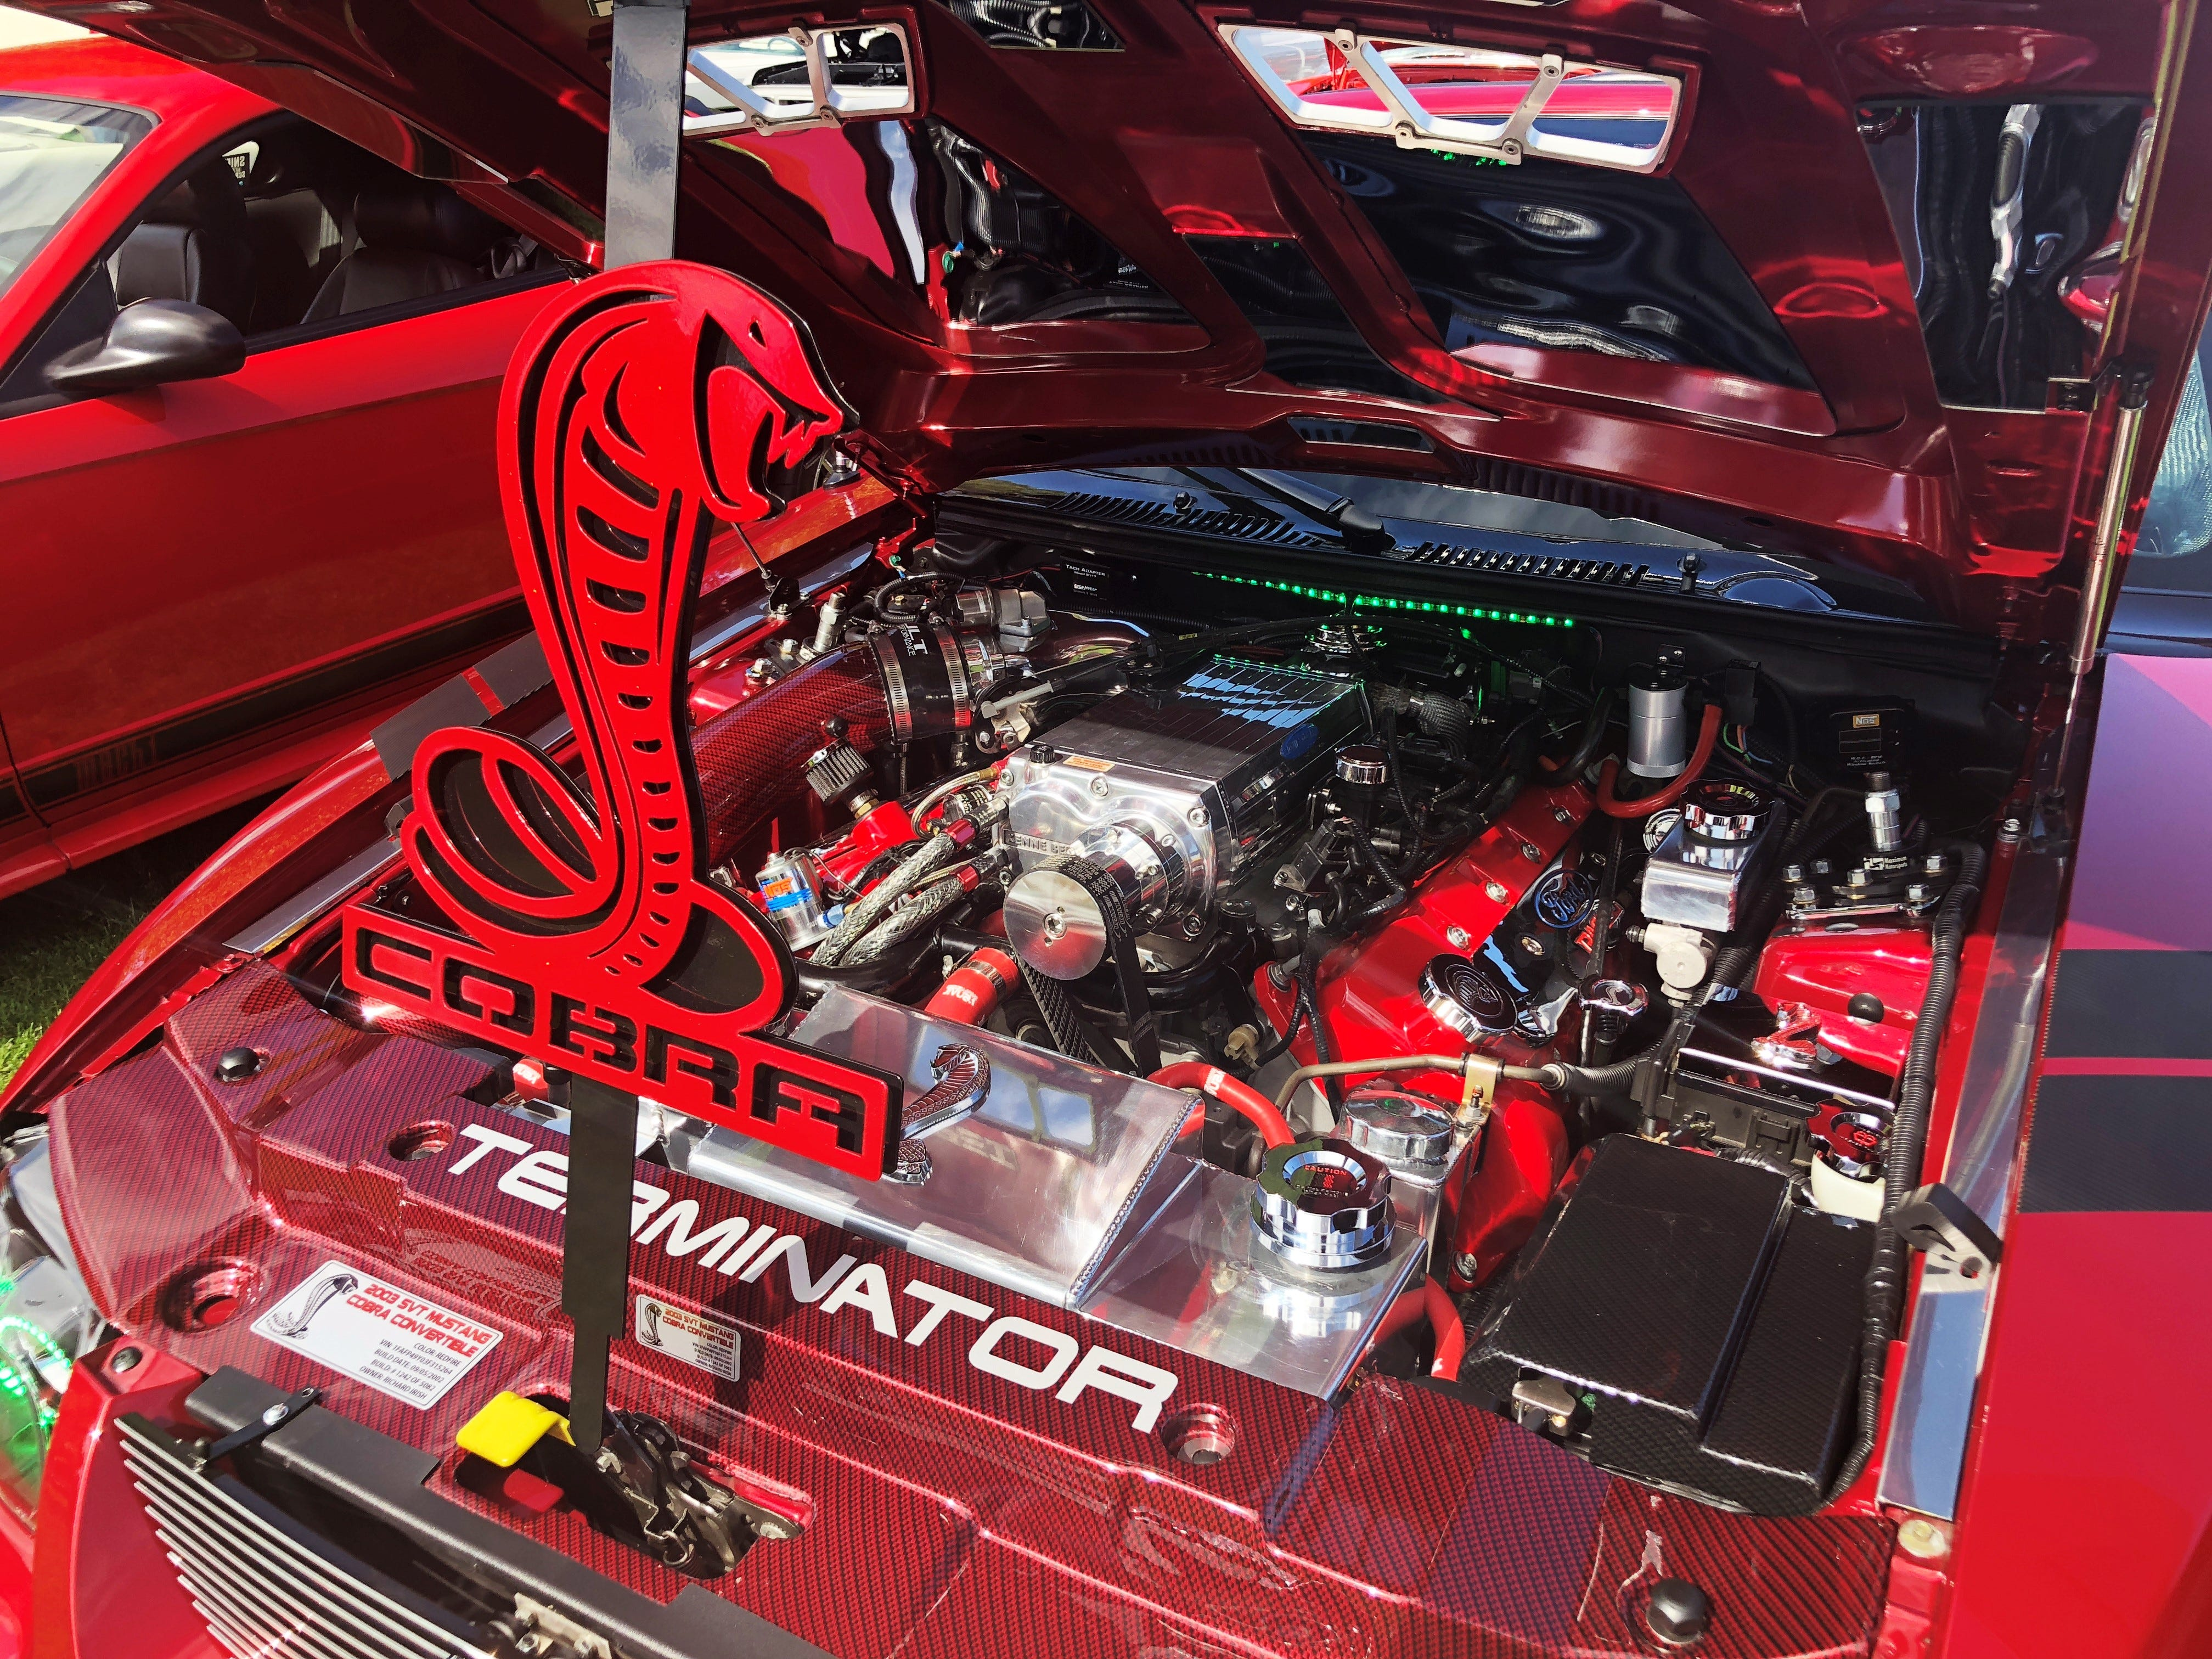 The engine of a 2003 Ford Mustang Cobra RedFire Convertible TERMINATOR at the 27th Annual Carousel Cruise at Riverfront Park in Salem on Saturday, Sept. 1.